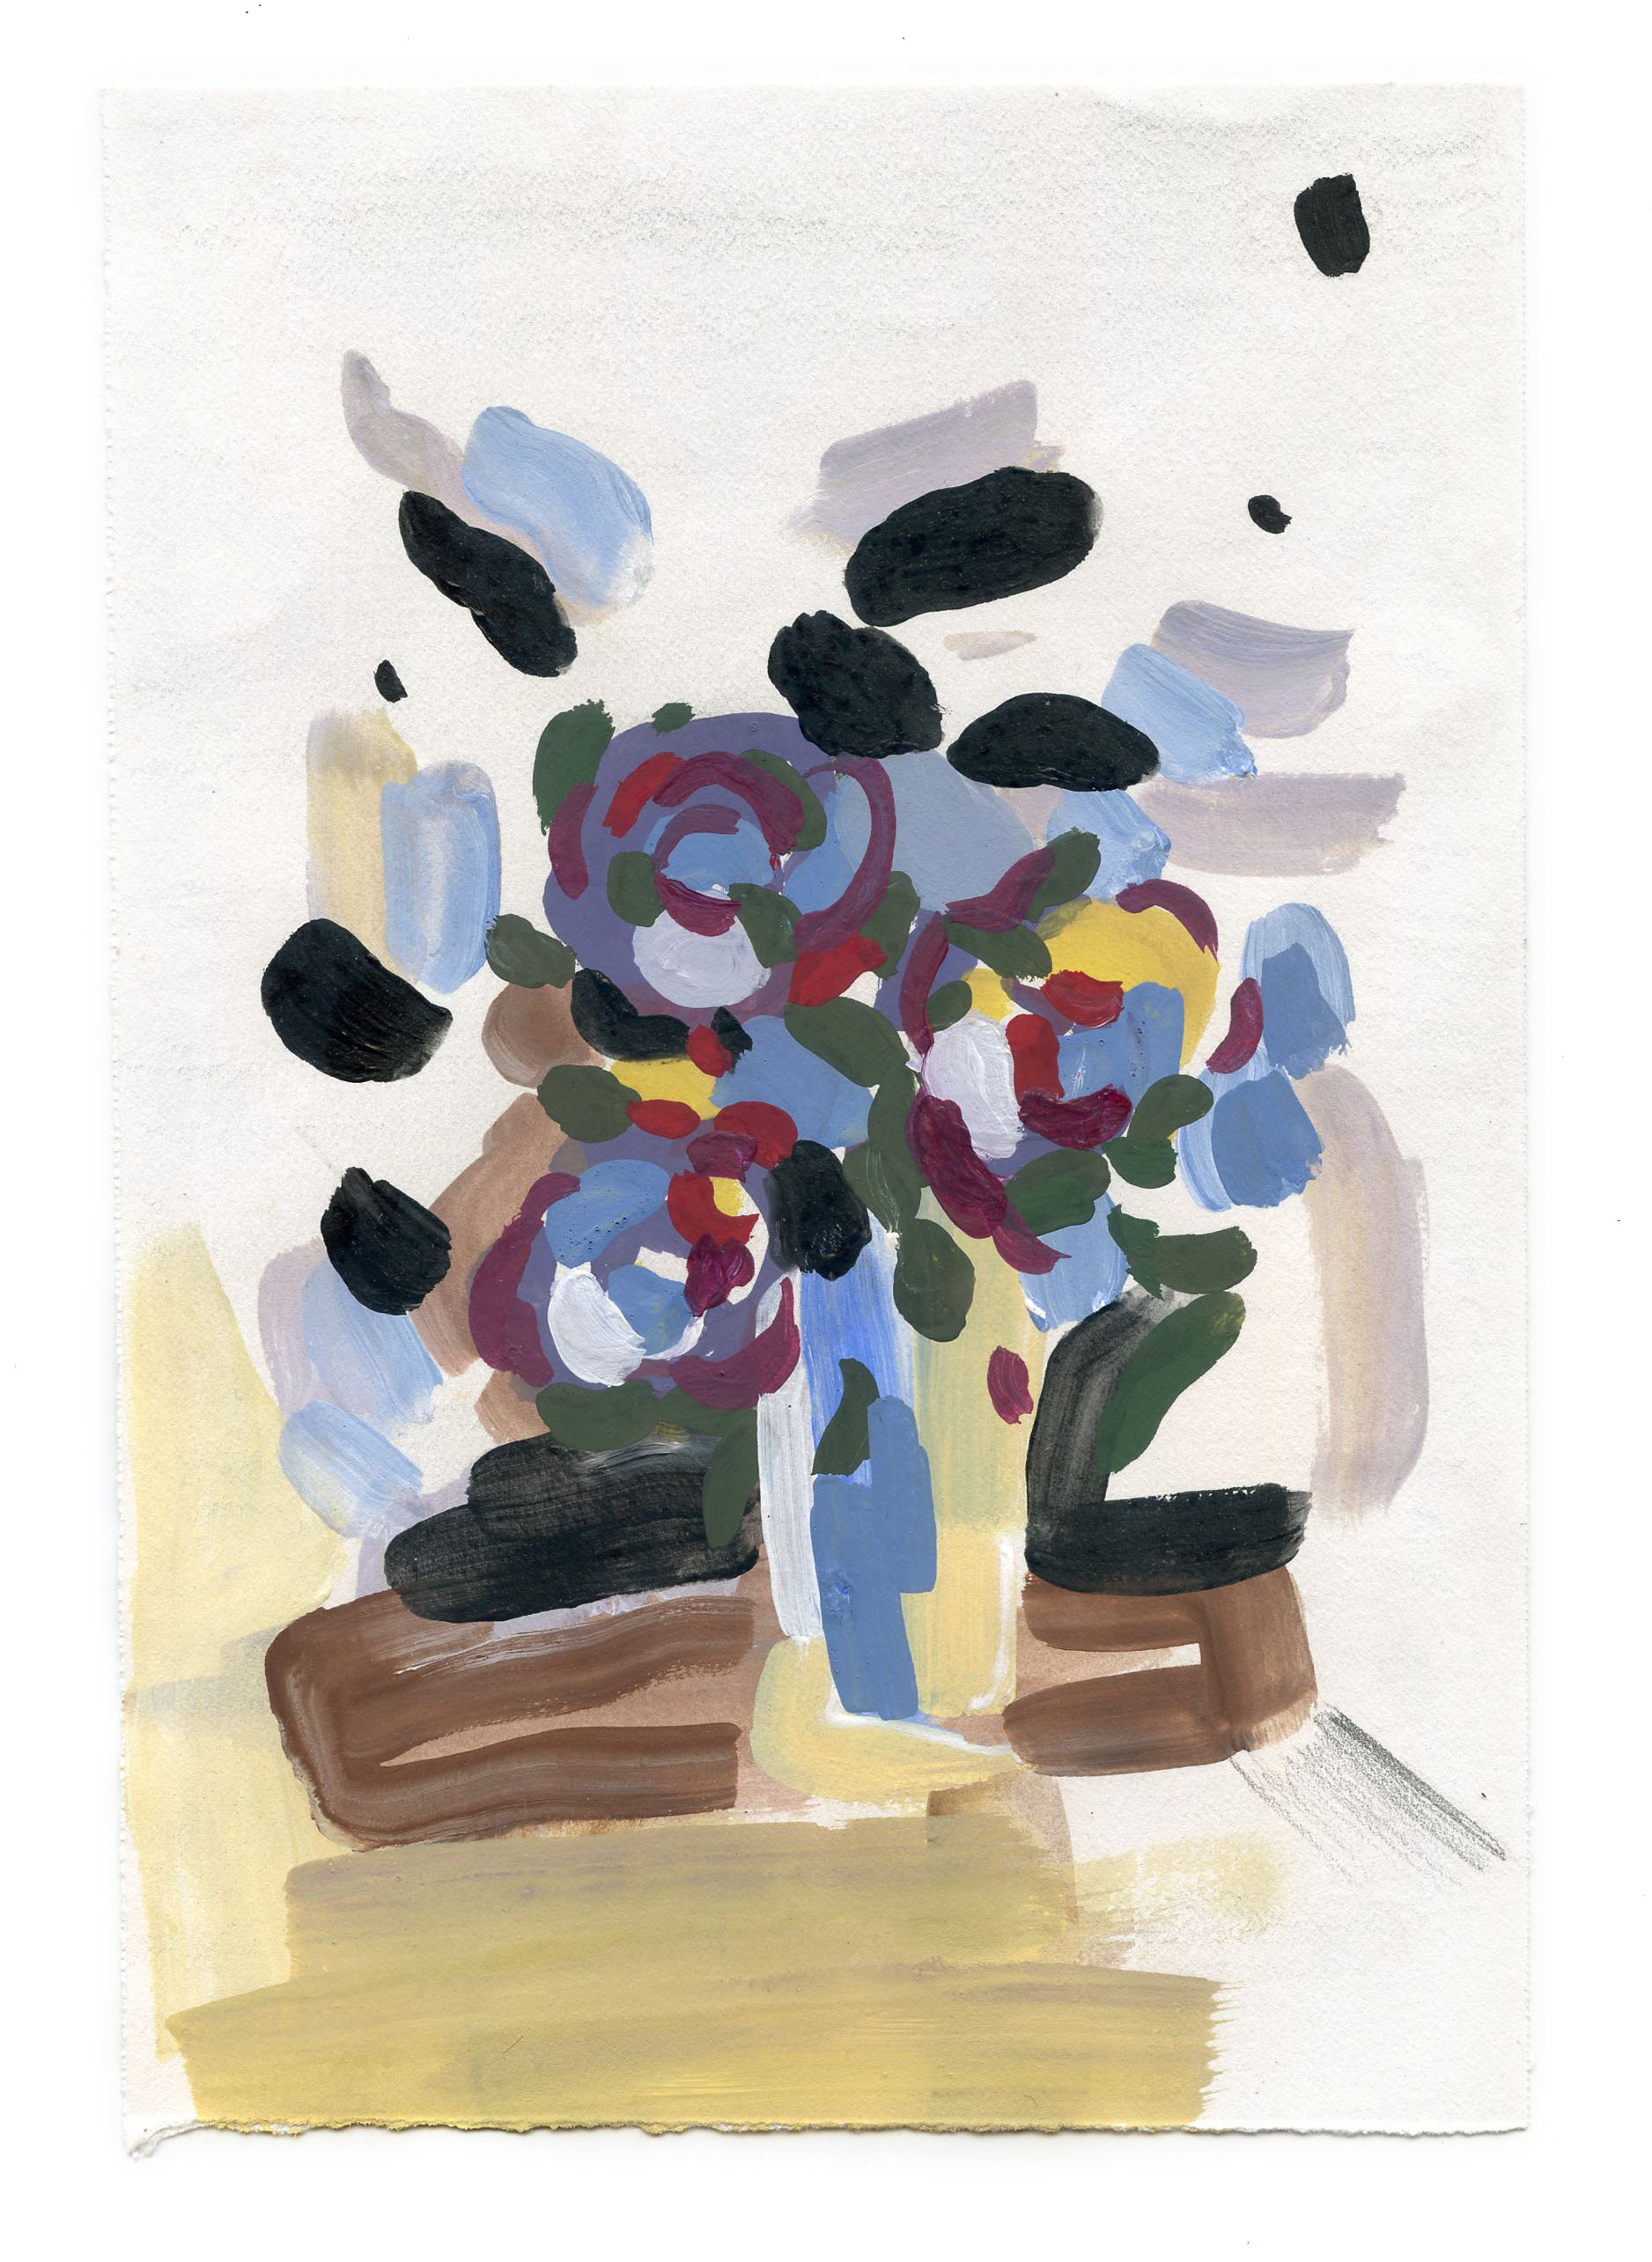 Gouache on paper, 2015 8 x 6 inches